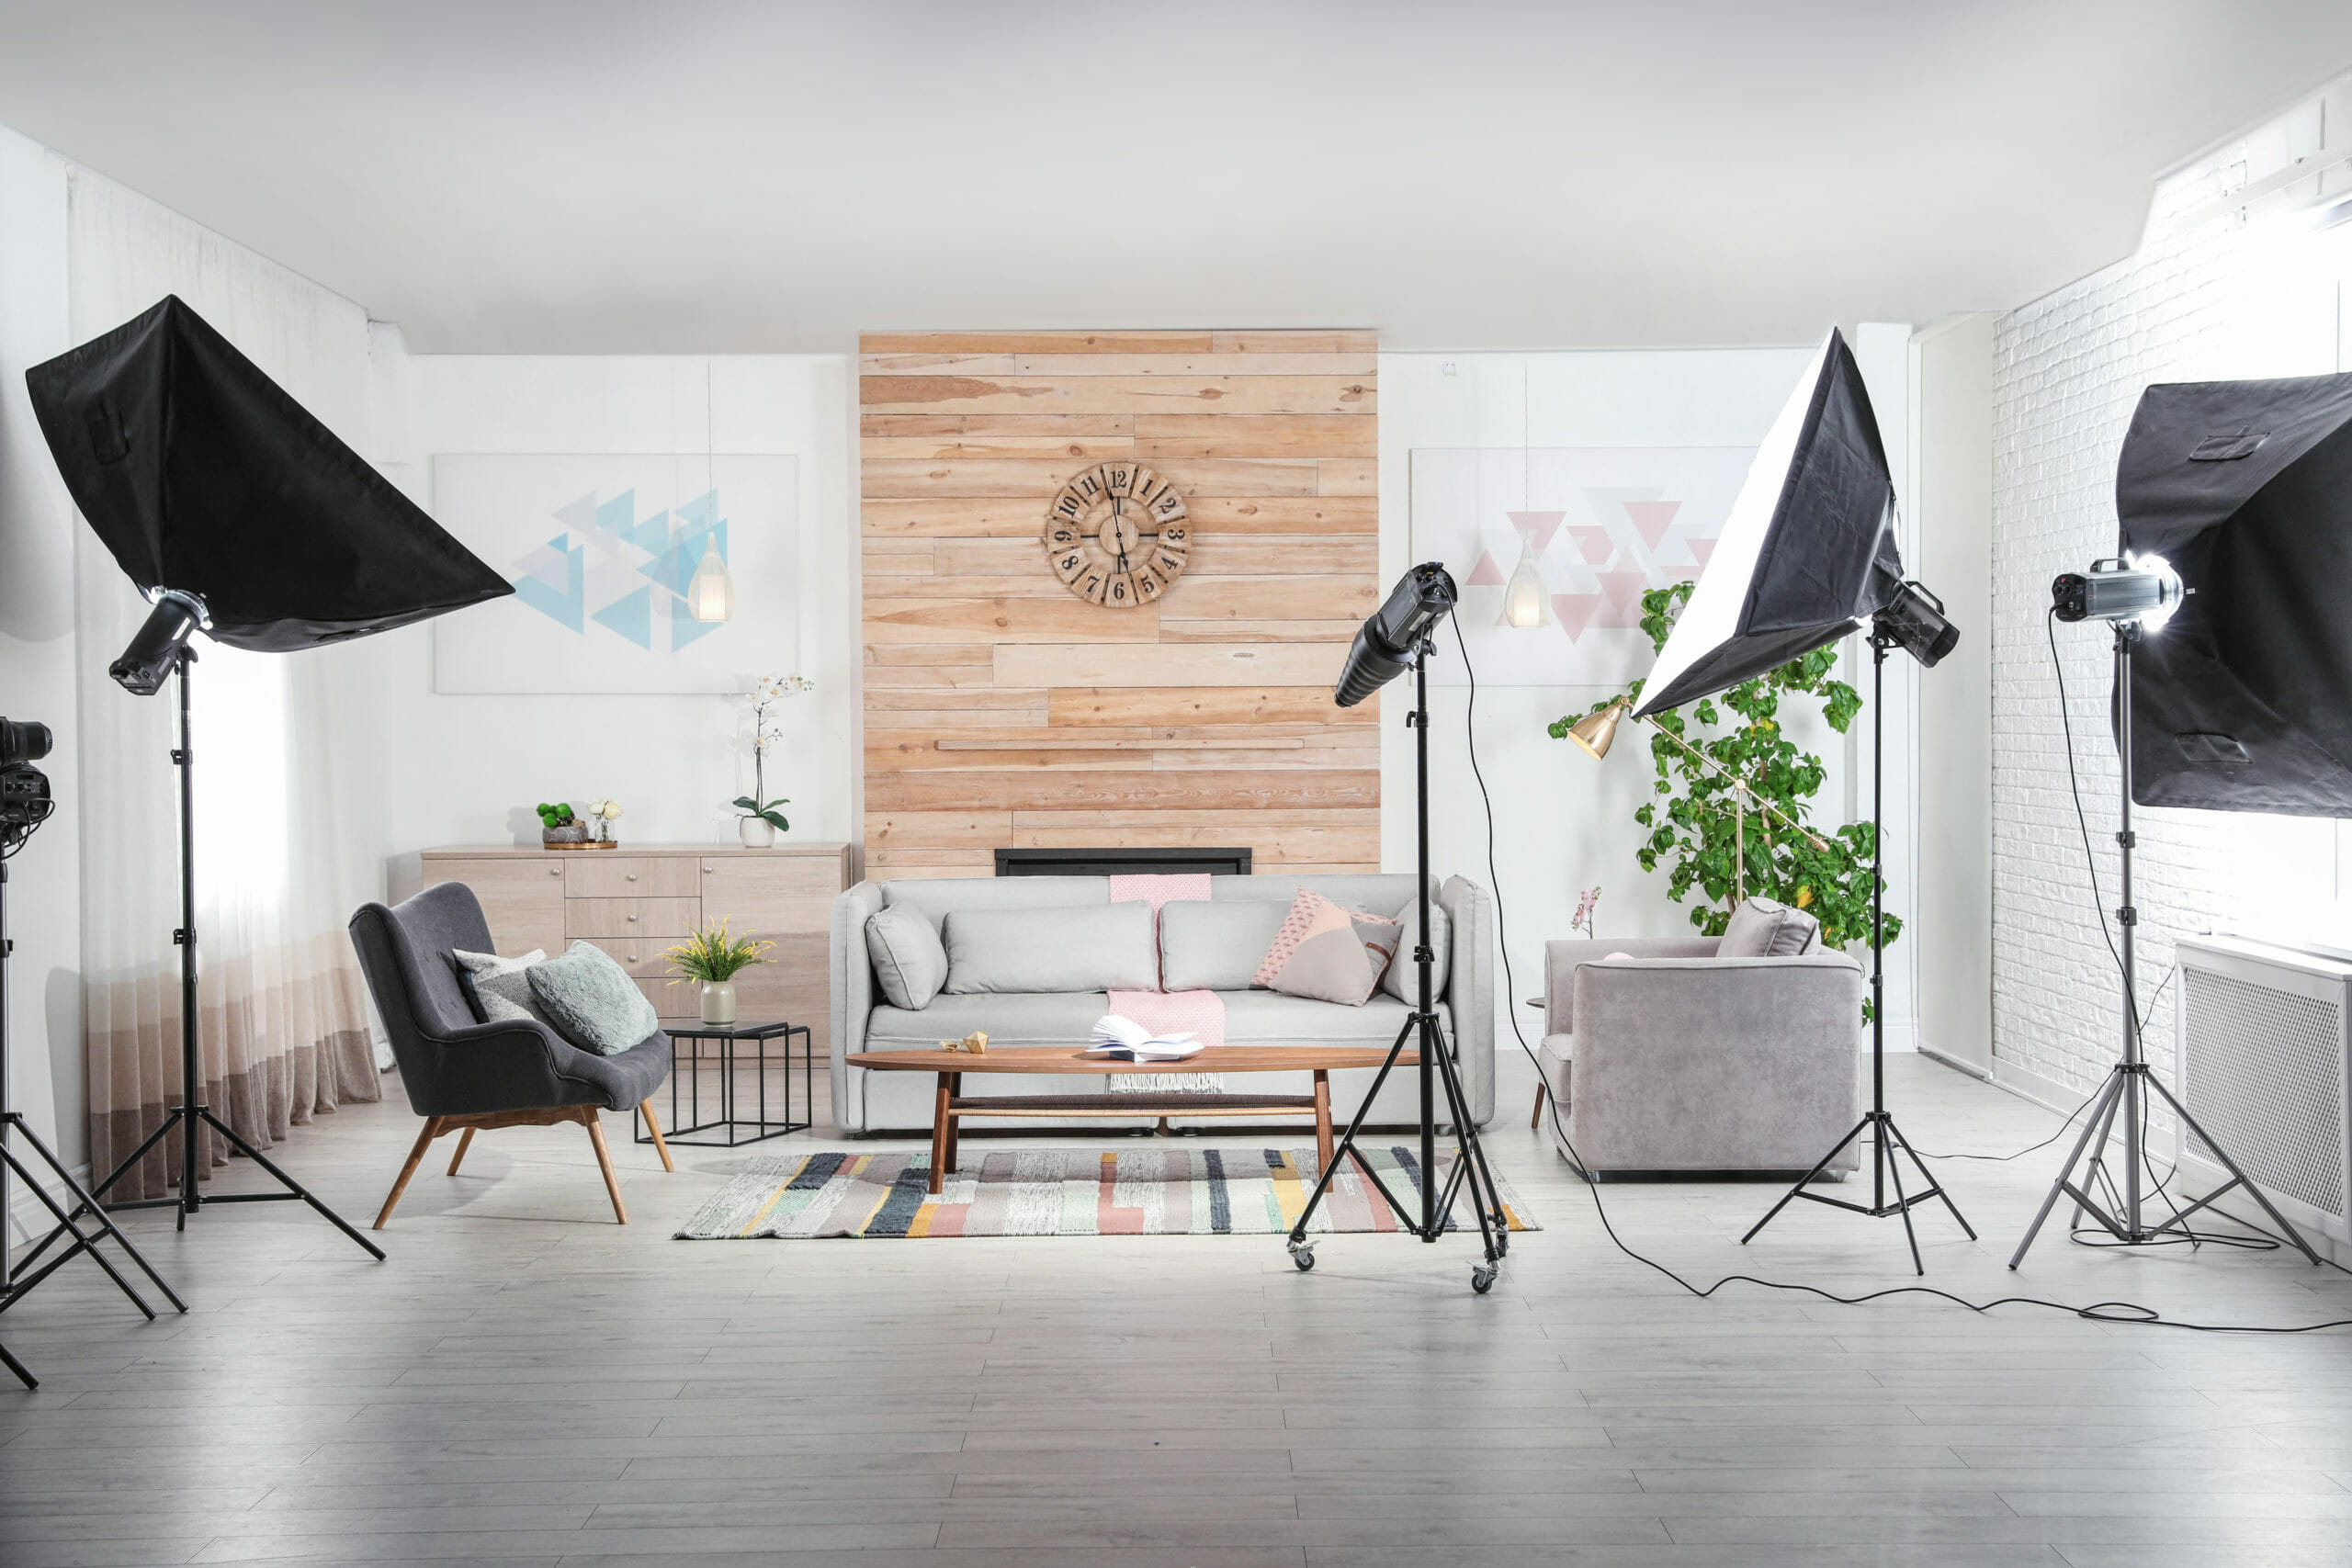 Real Estate Photography - Flash with Modifiers